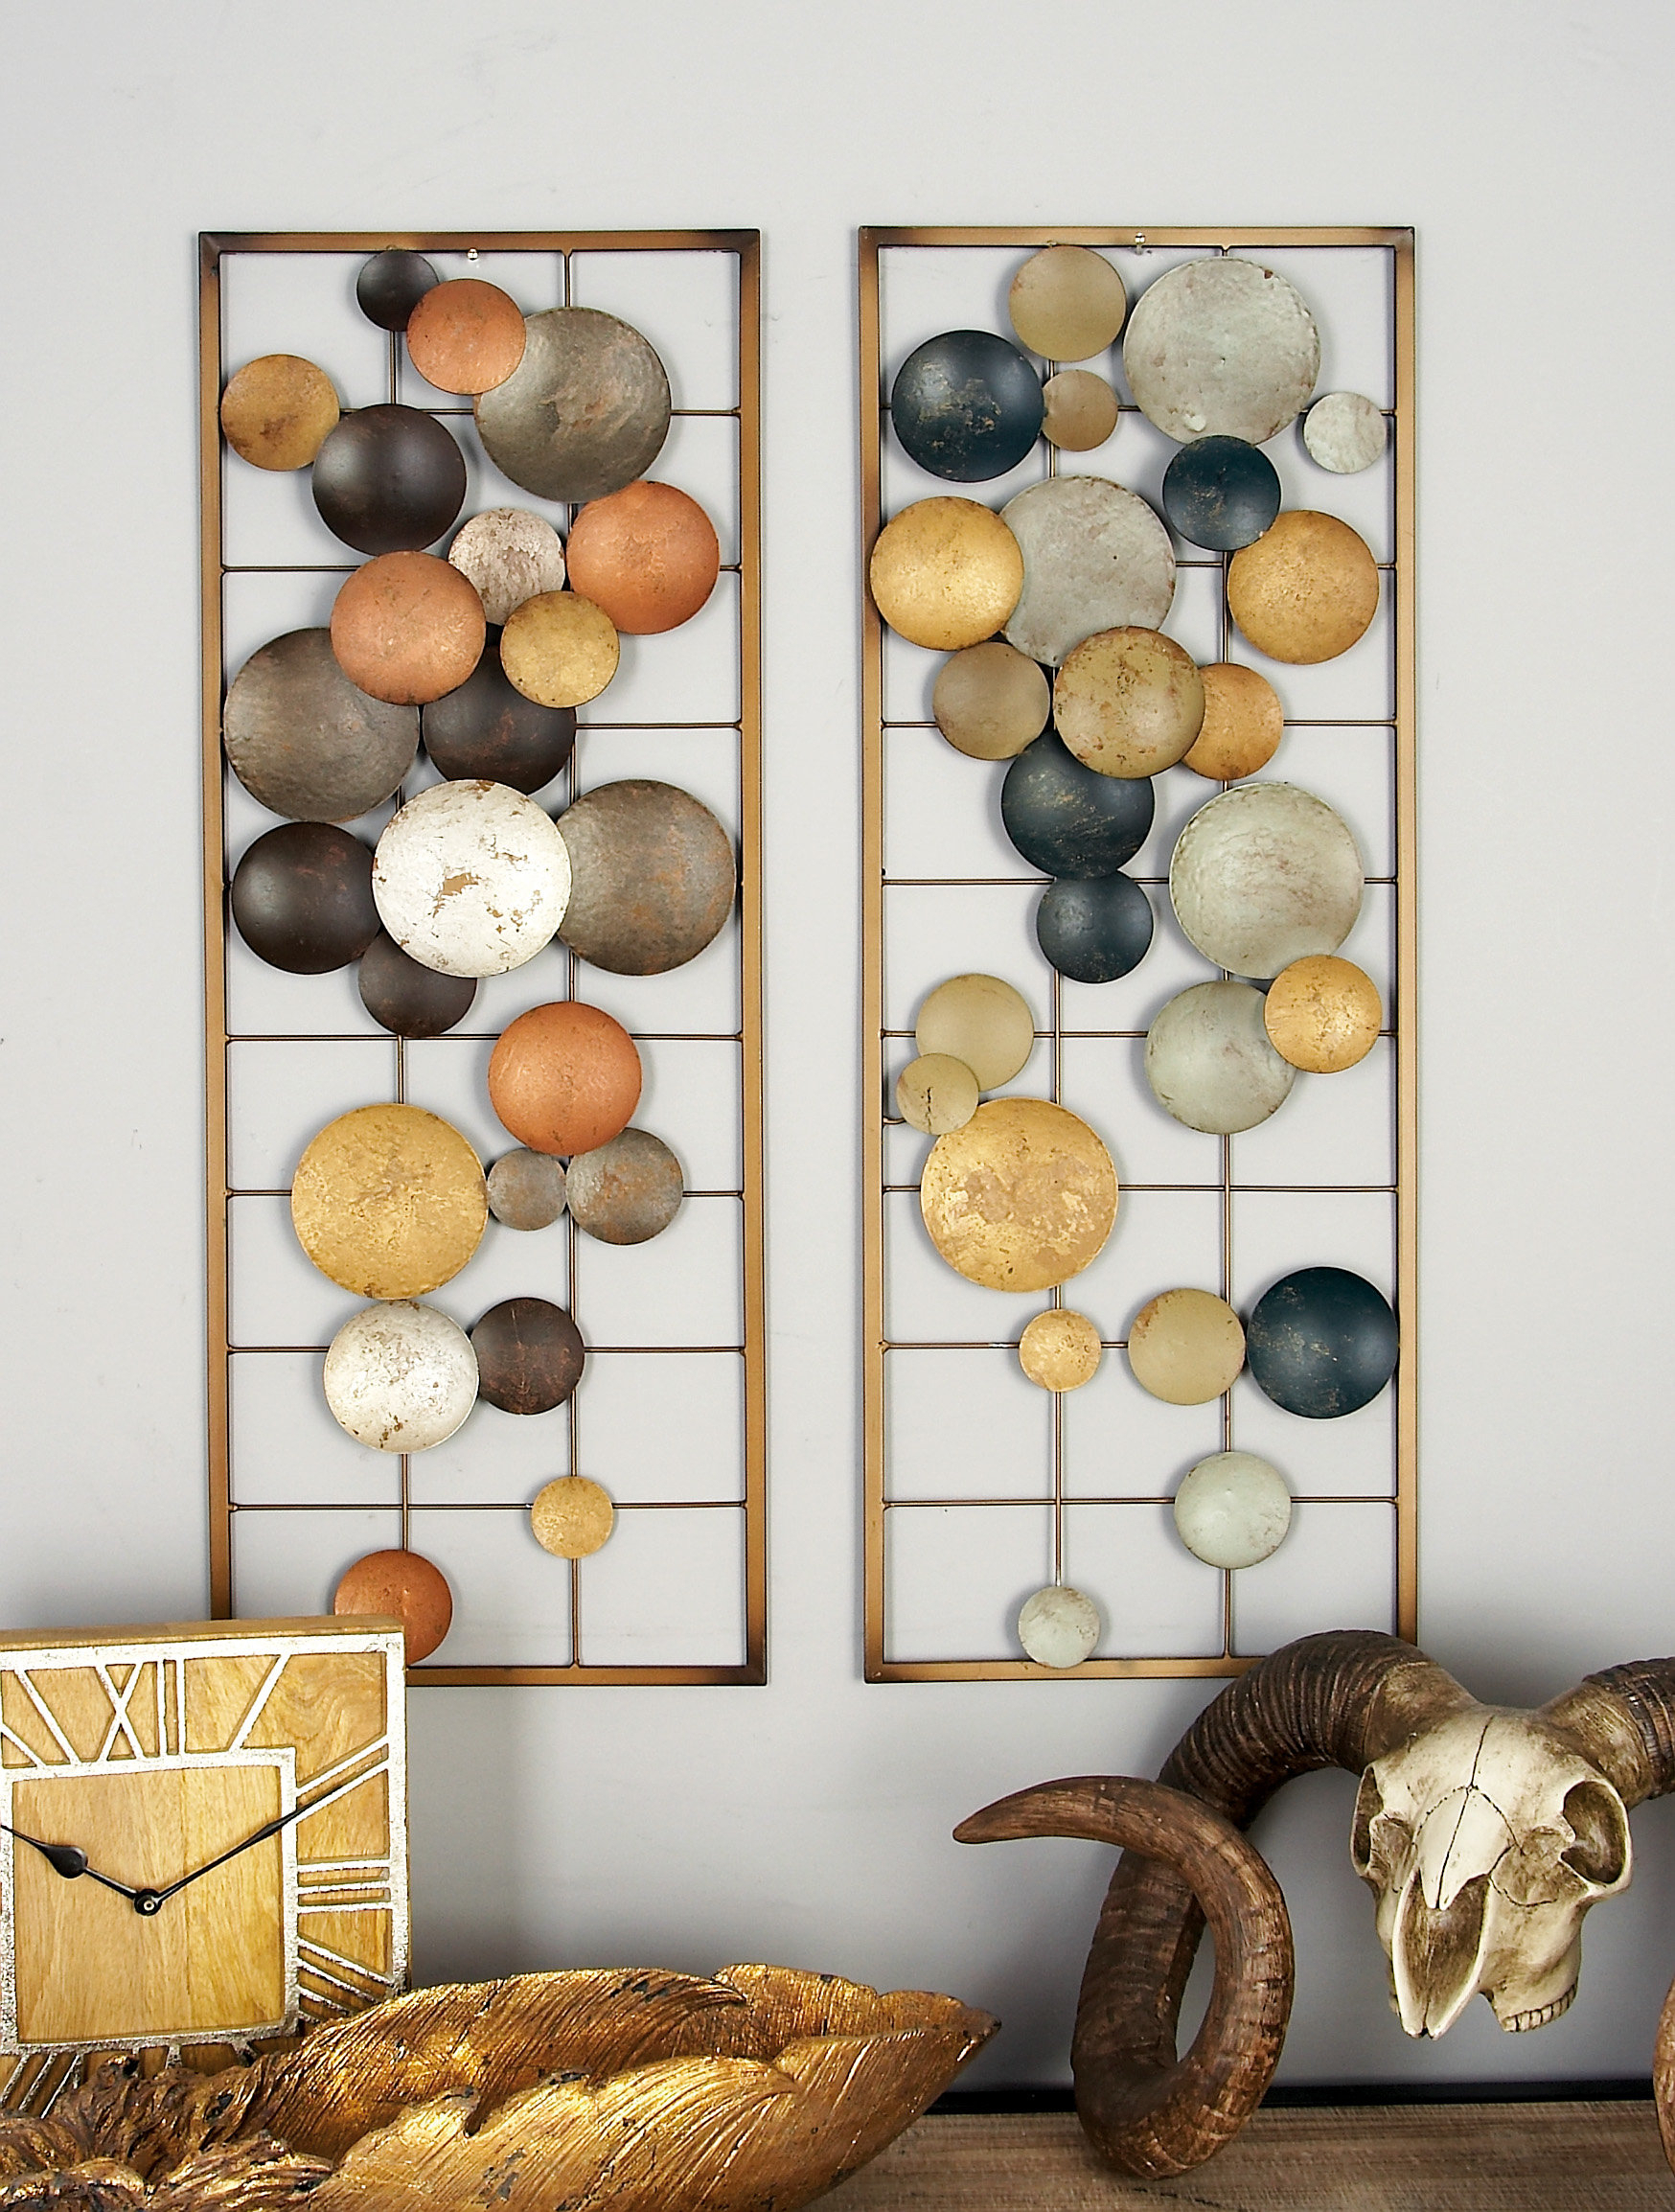 Silver Sunburst Wall Decor | Wayfair in 2 Piece Starburst Wall Decor Sets (Image 26 of 30)